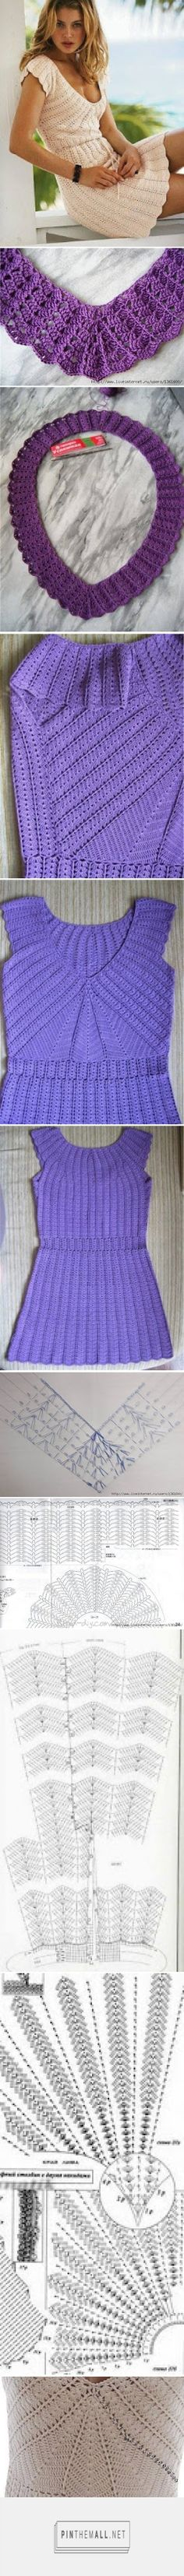 Crochet patterns: Crochet SummerTunic Dress Free Chart and Photo Instructions - created via http://pinthemall.net